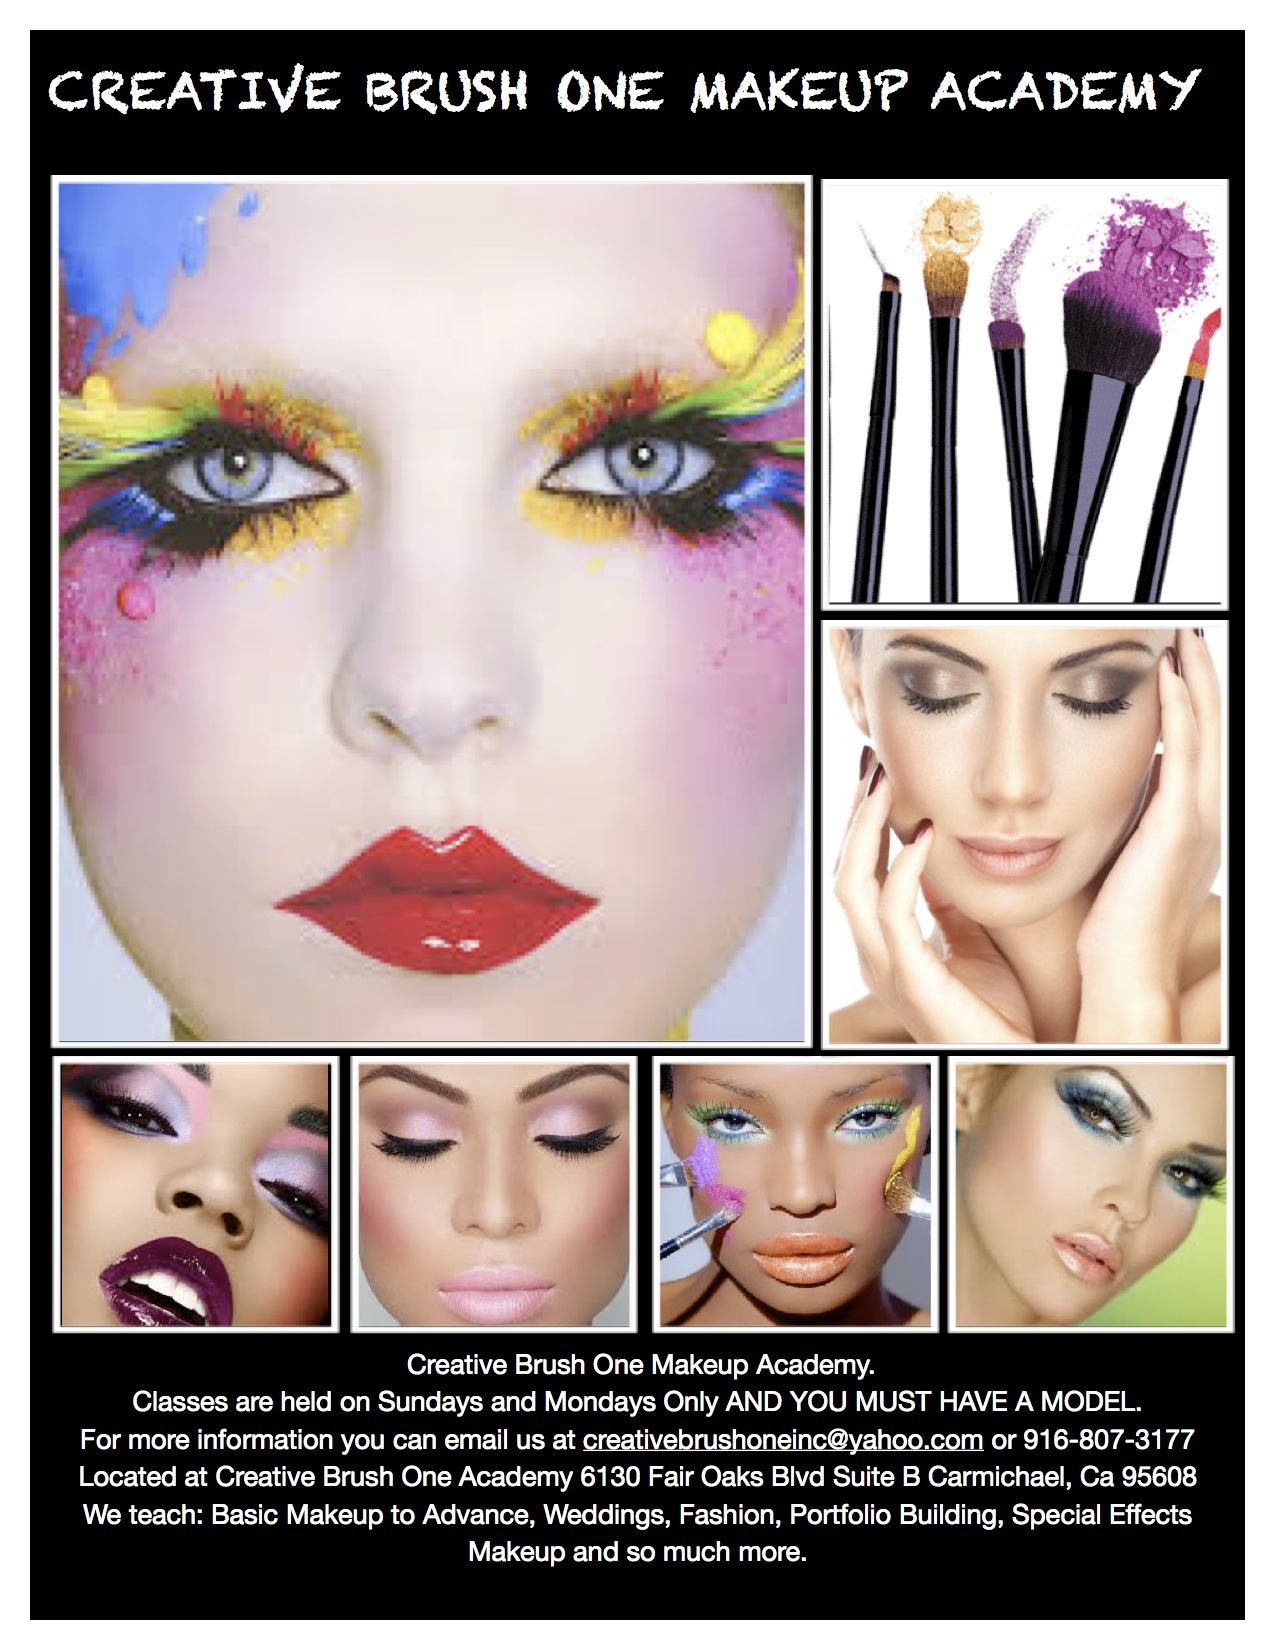 Creative Brush One Makeup Academy here in Carmichael, Ca